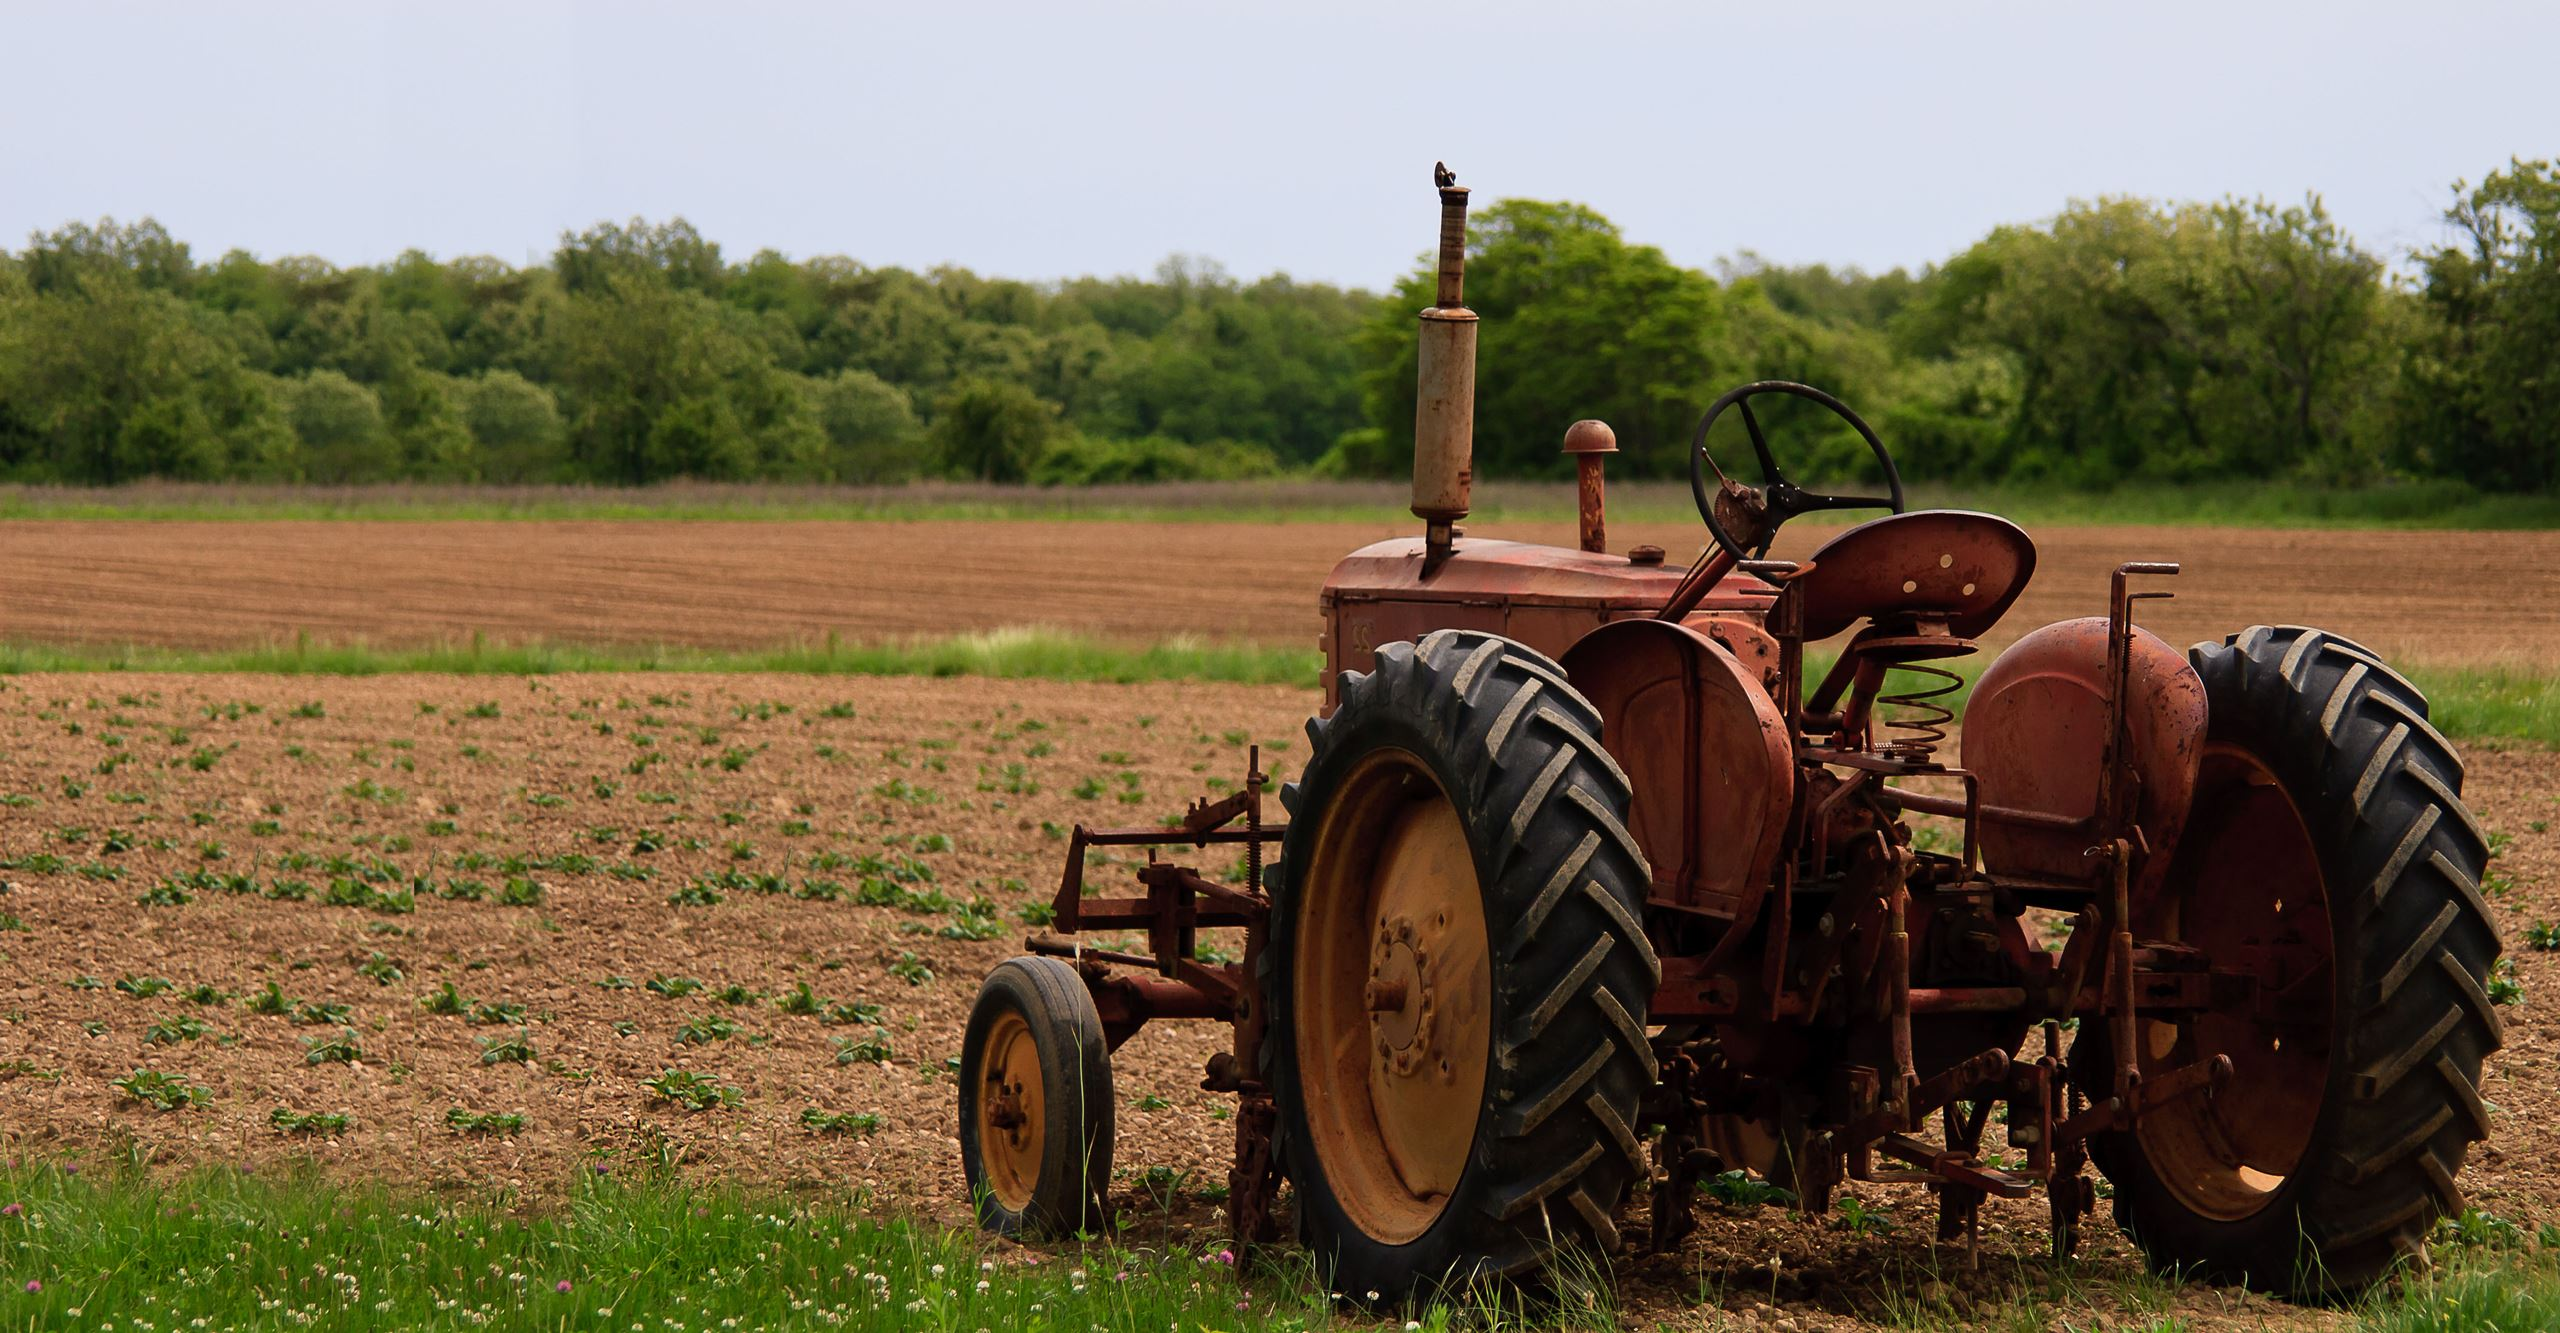 Rustic tractor in field